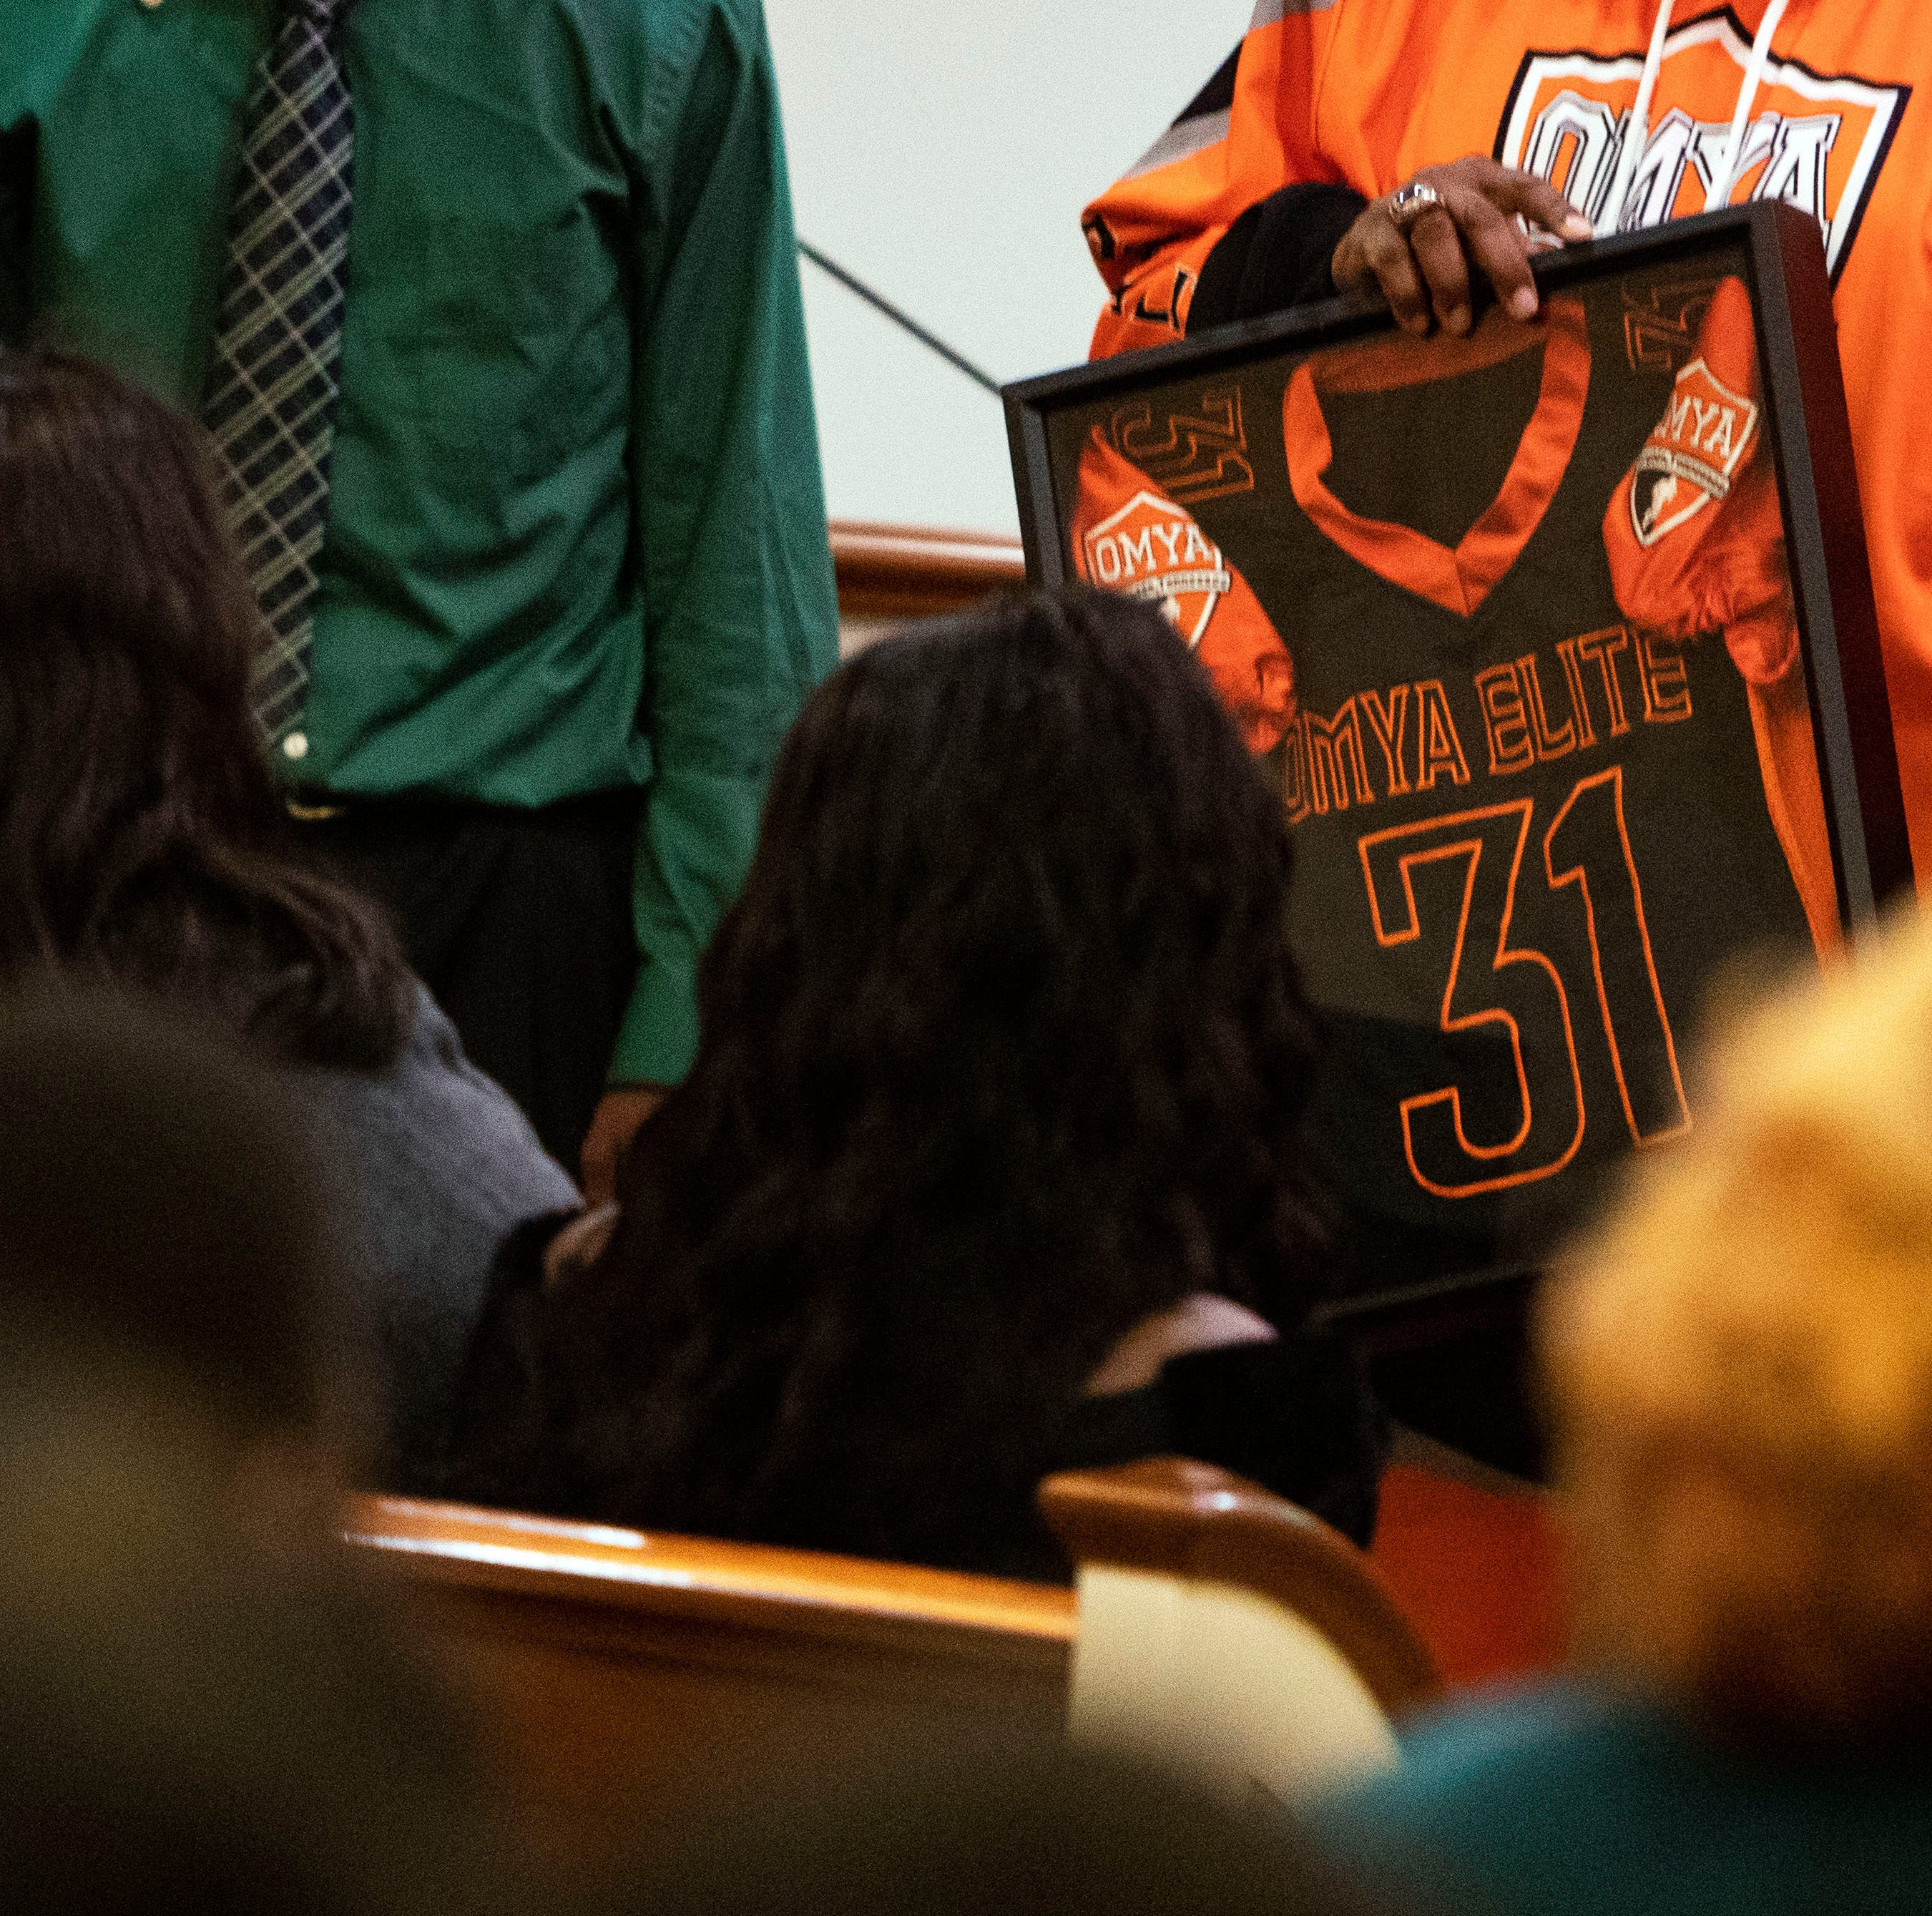 Kameron Johnson's parents presented with football jersey he wore before deadly bus crash